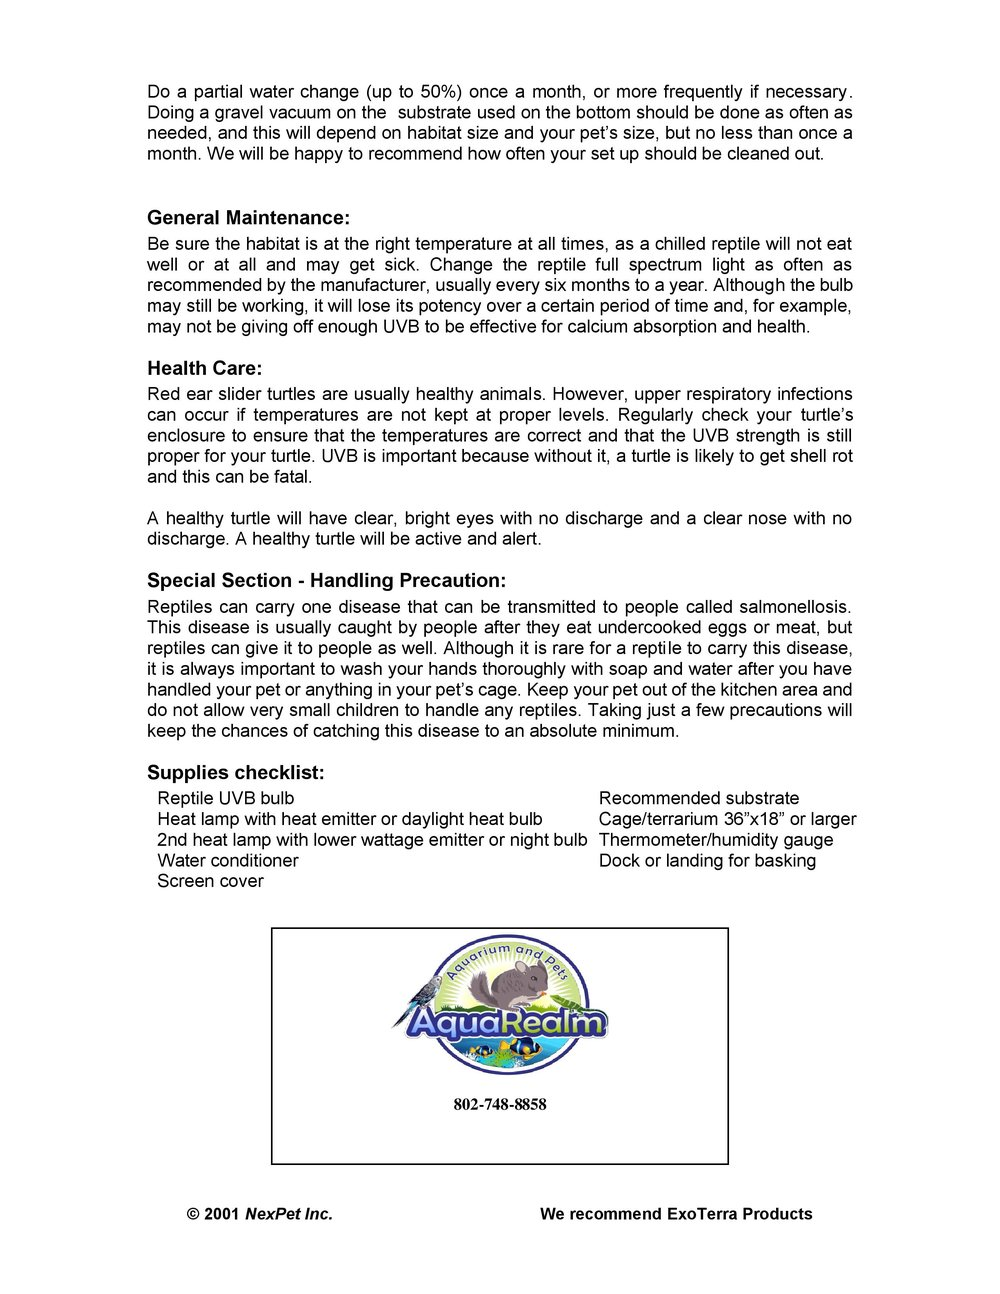 Red Eared Slider Care Sheet pg2